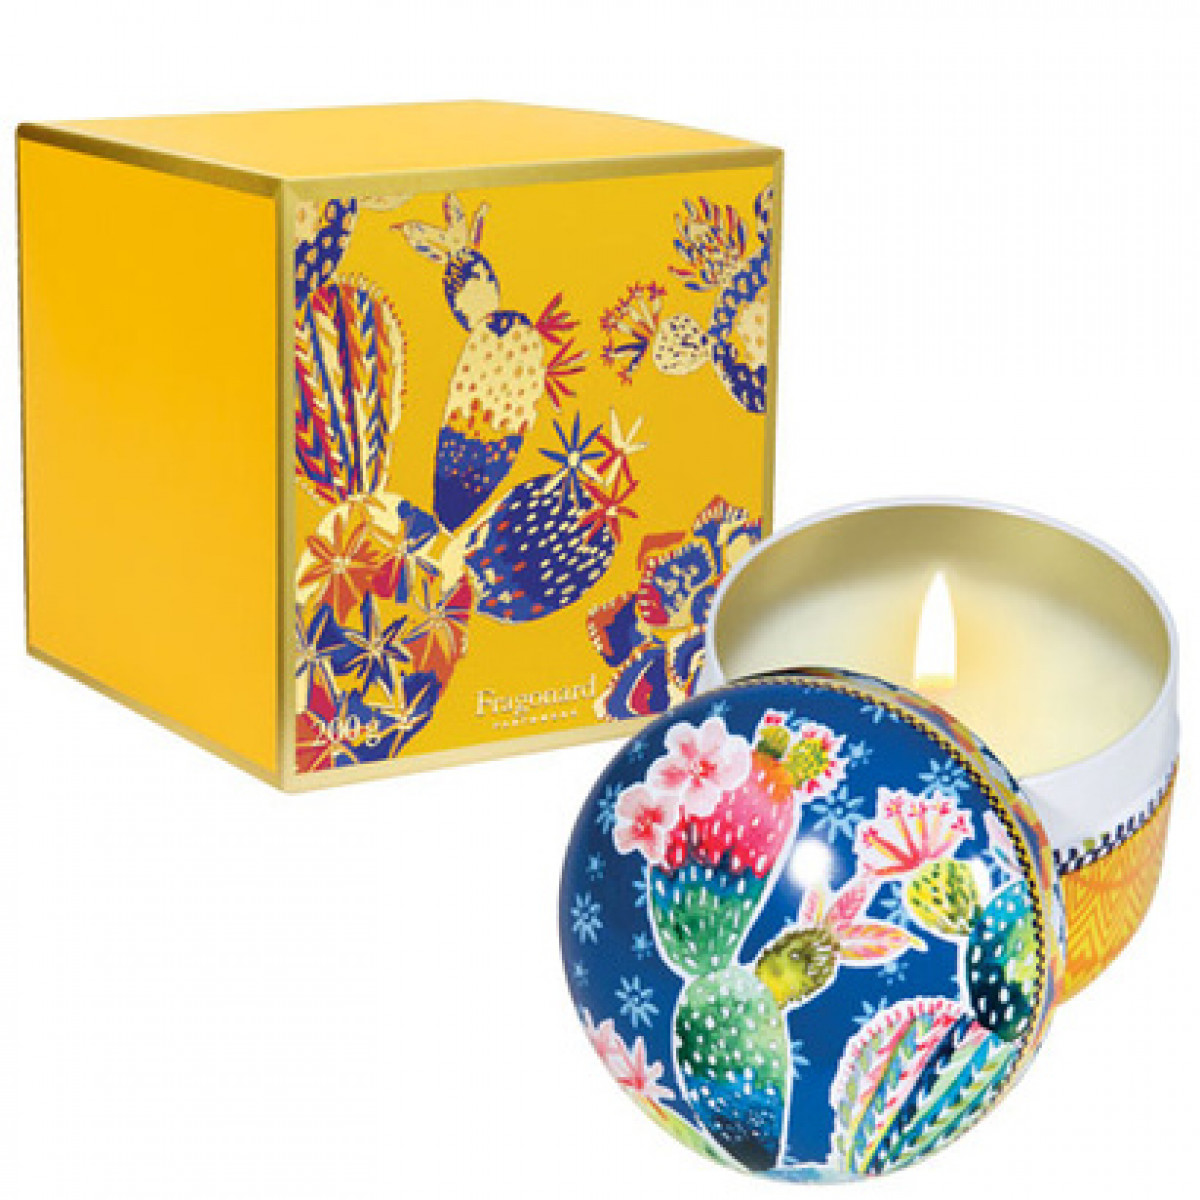 Fragonard Home Fragrance Bougie Parfumée Épices Chocolat 200